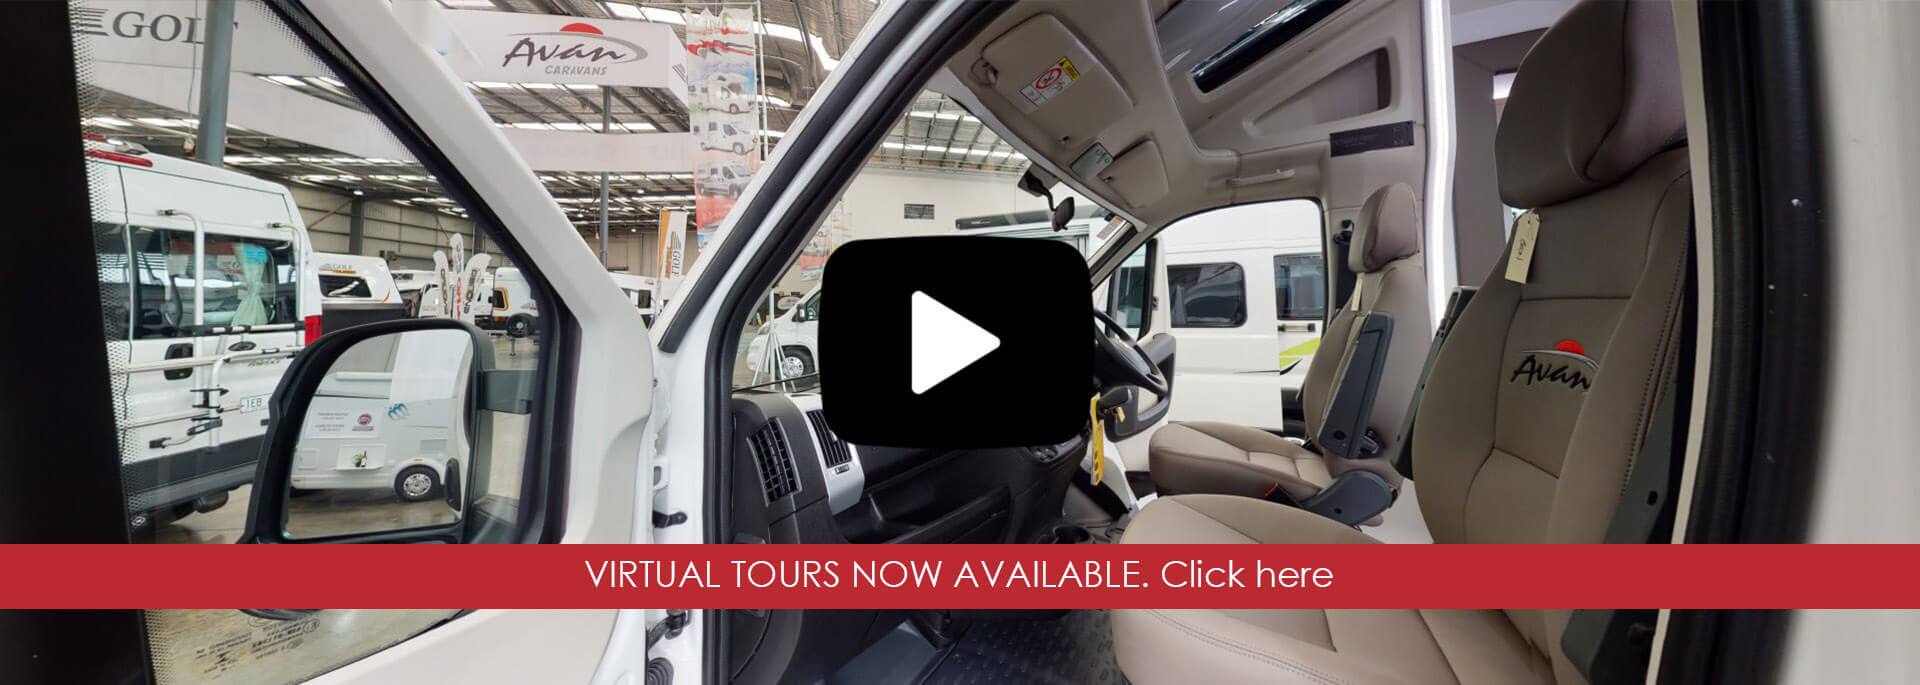 Non Contact Caravan Virtual Tour